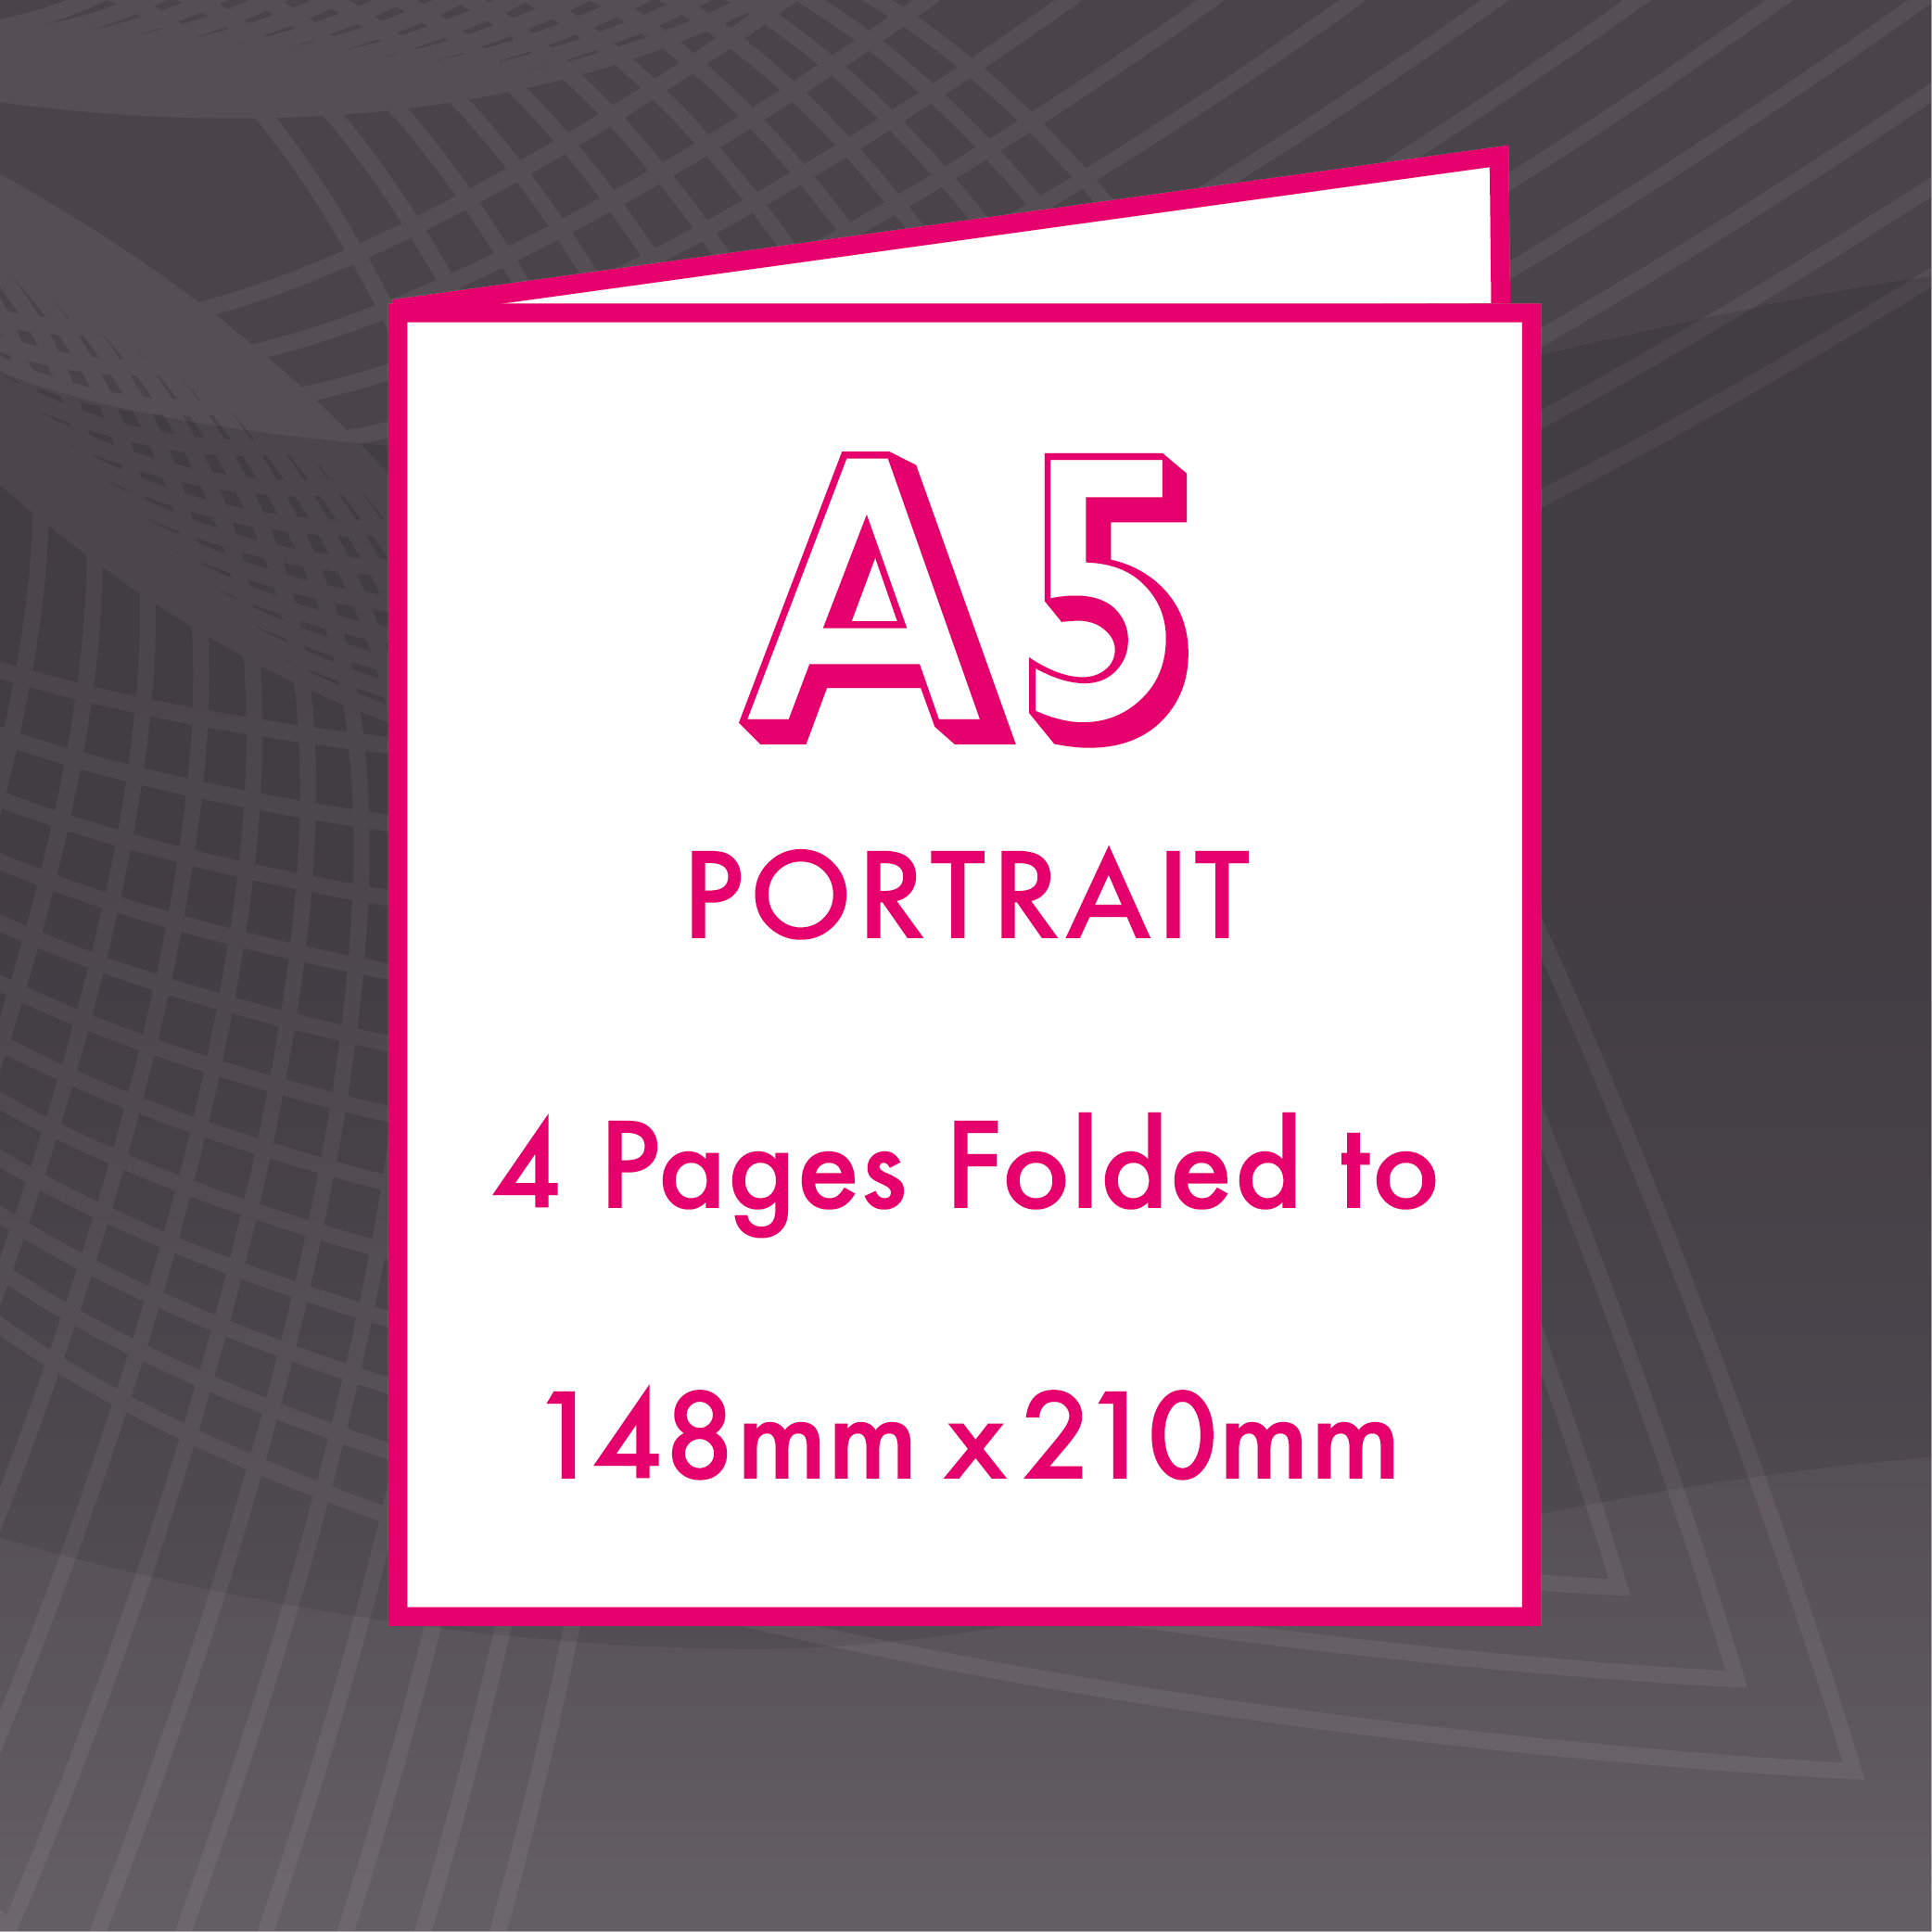 Picture of A5 Portrait - Folded 4 Pages Flyers